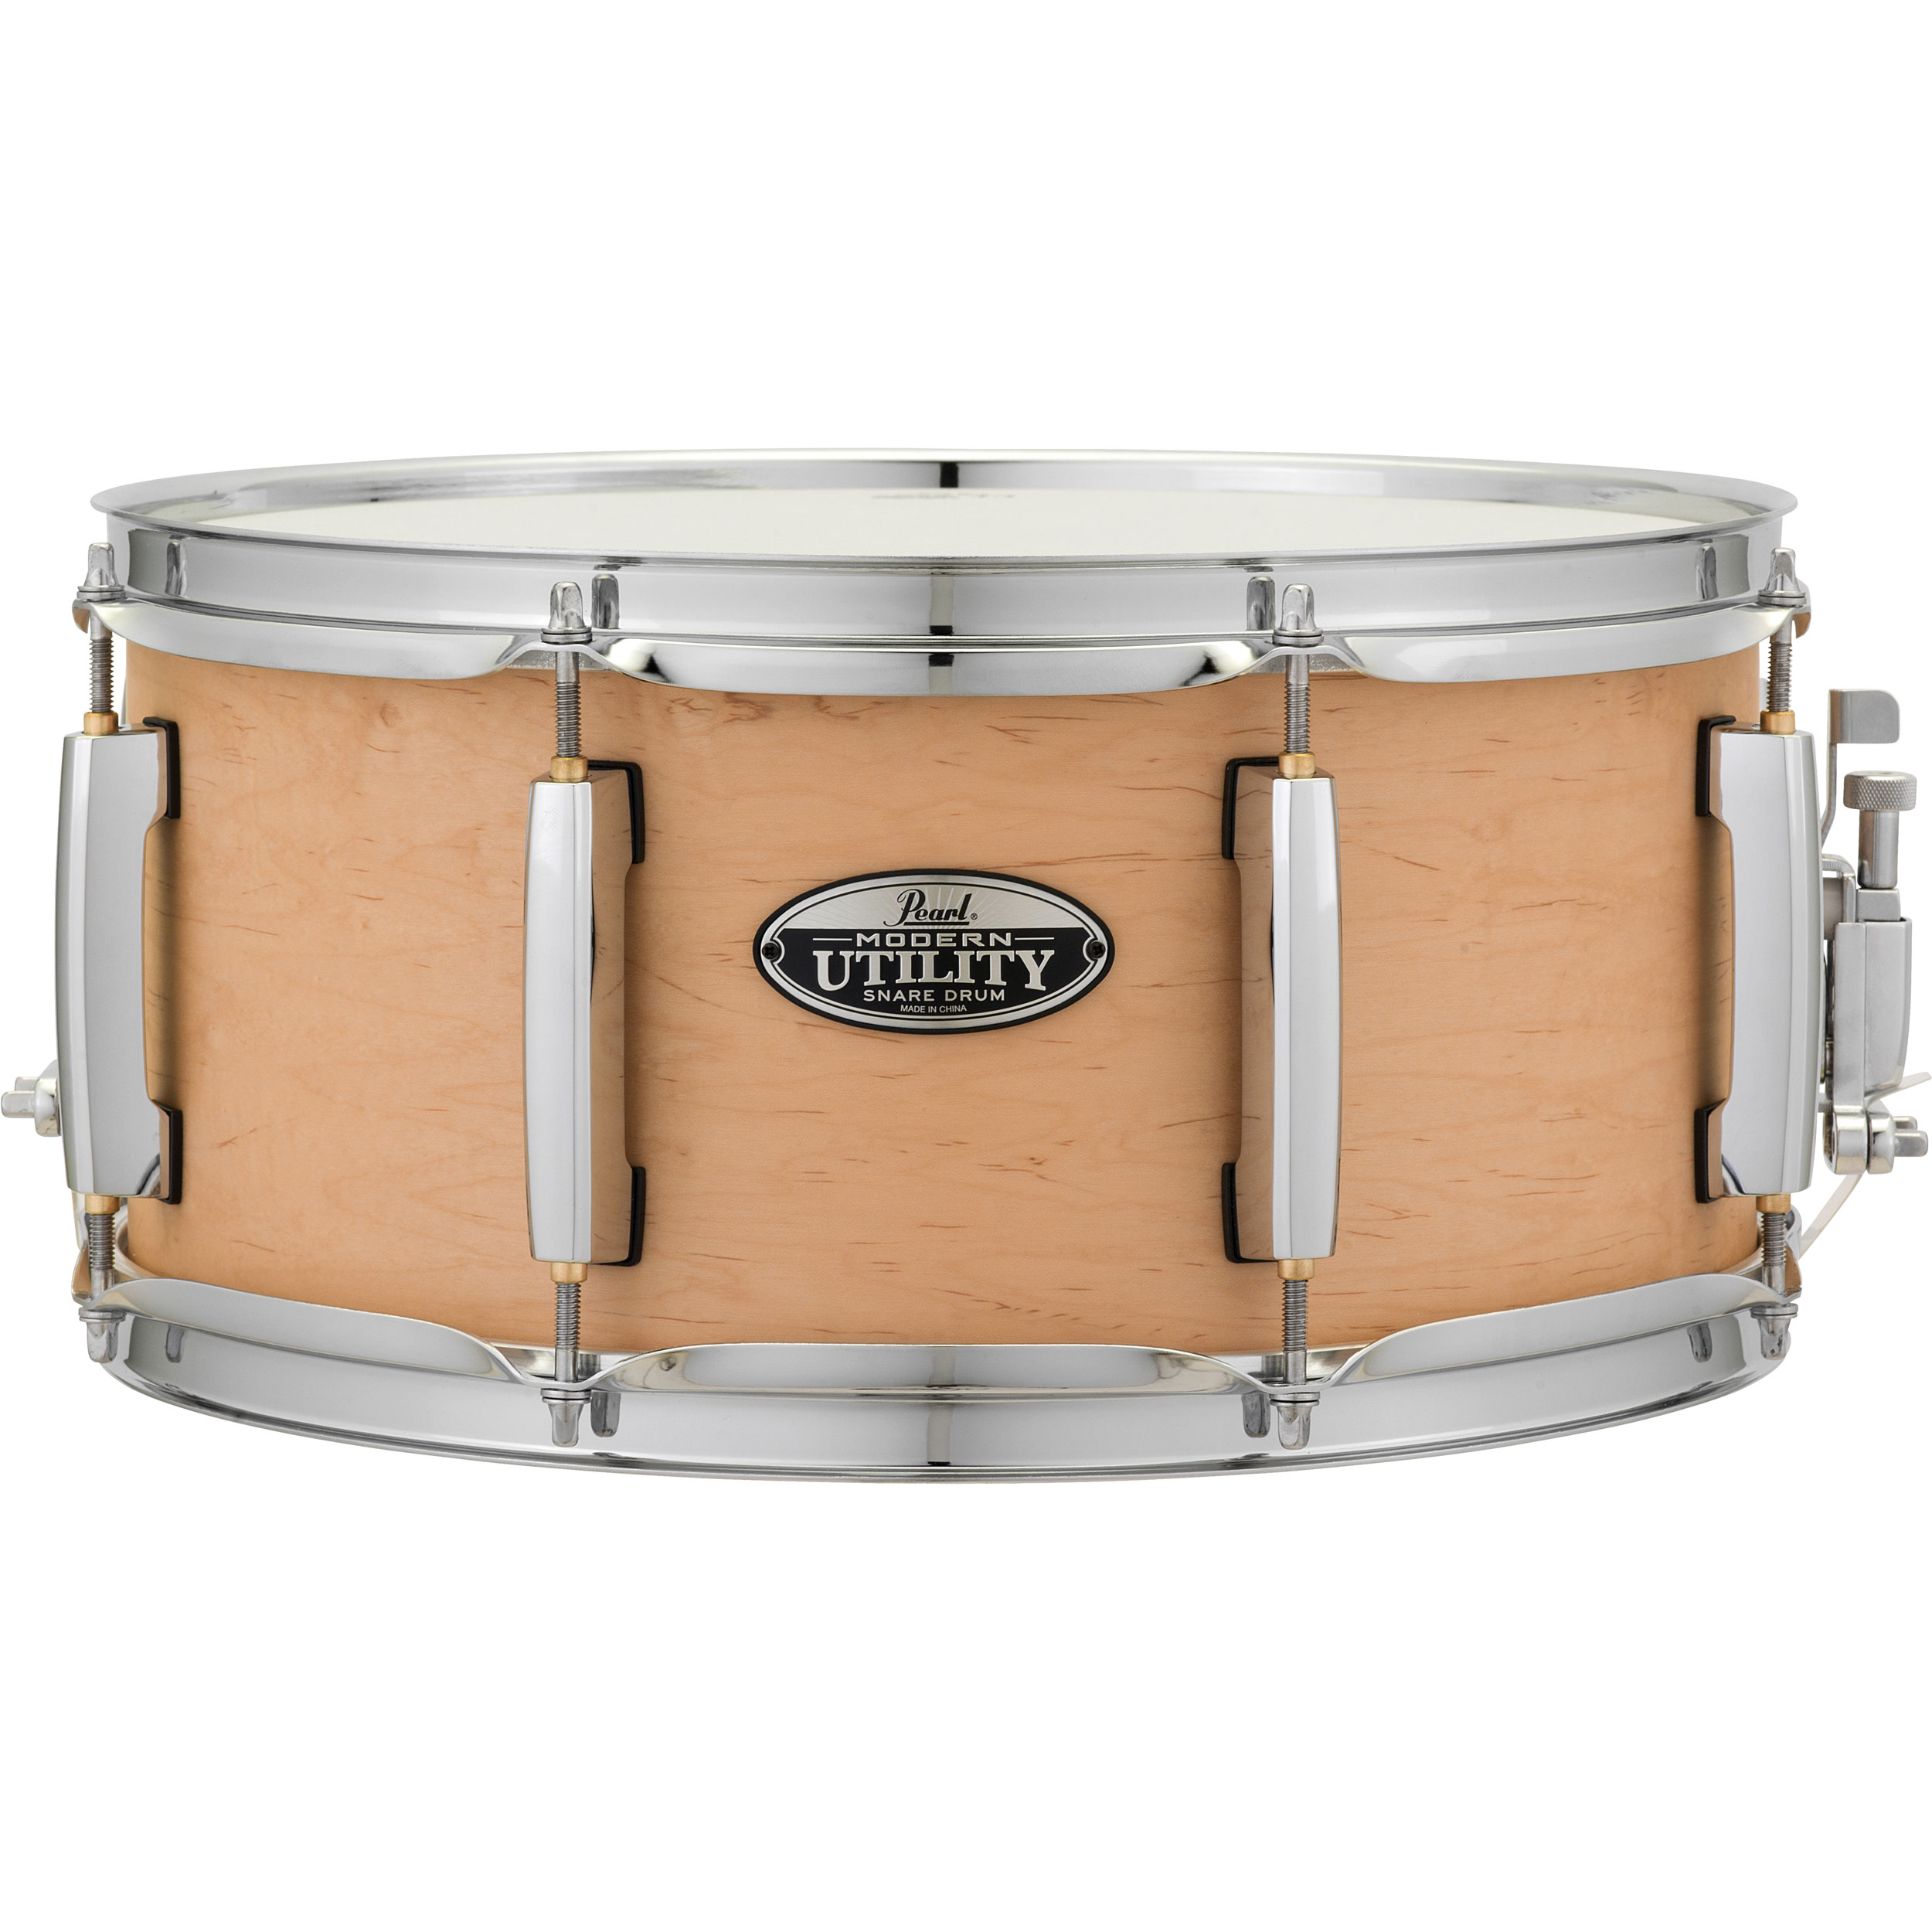 "Pearl 14"" x 6.5"" Modern Utility Maple Snare Drum"